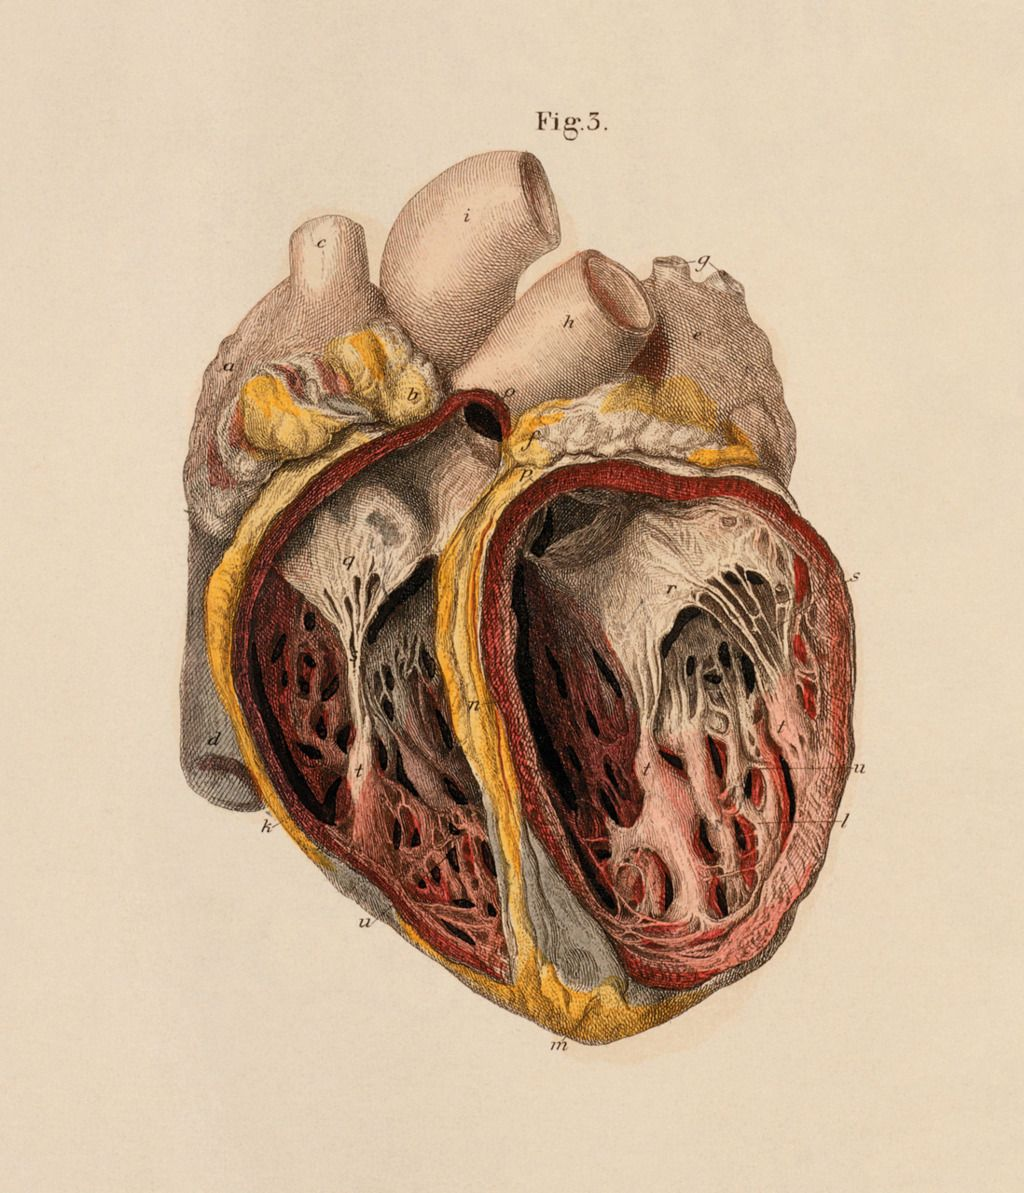 1024x1193 Vintage Anatomical Heart Drawing Vah10 Art